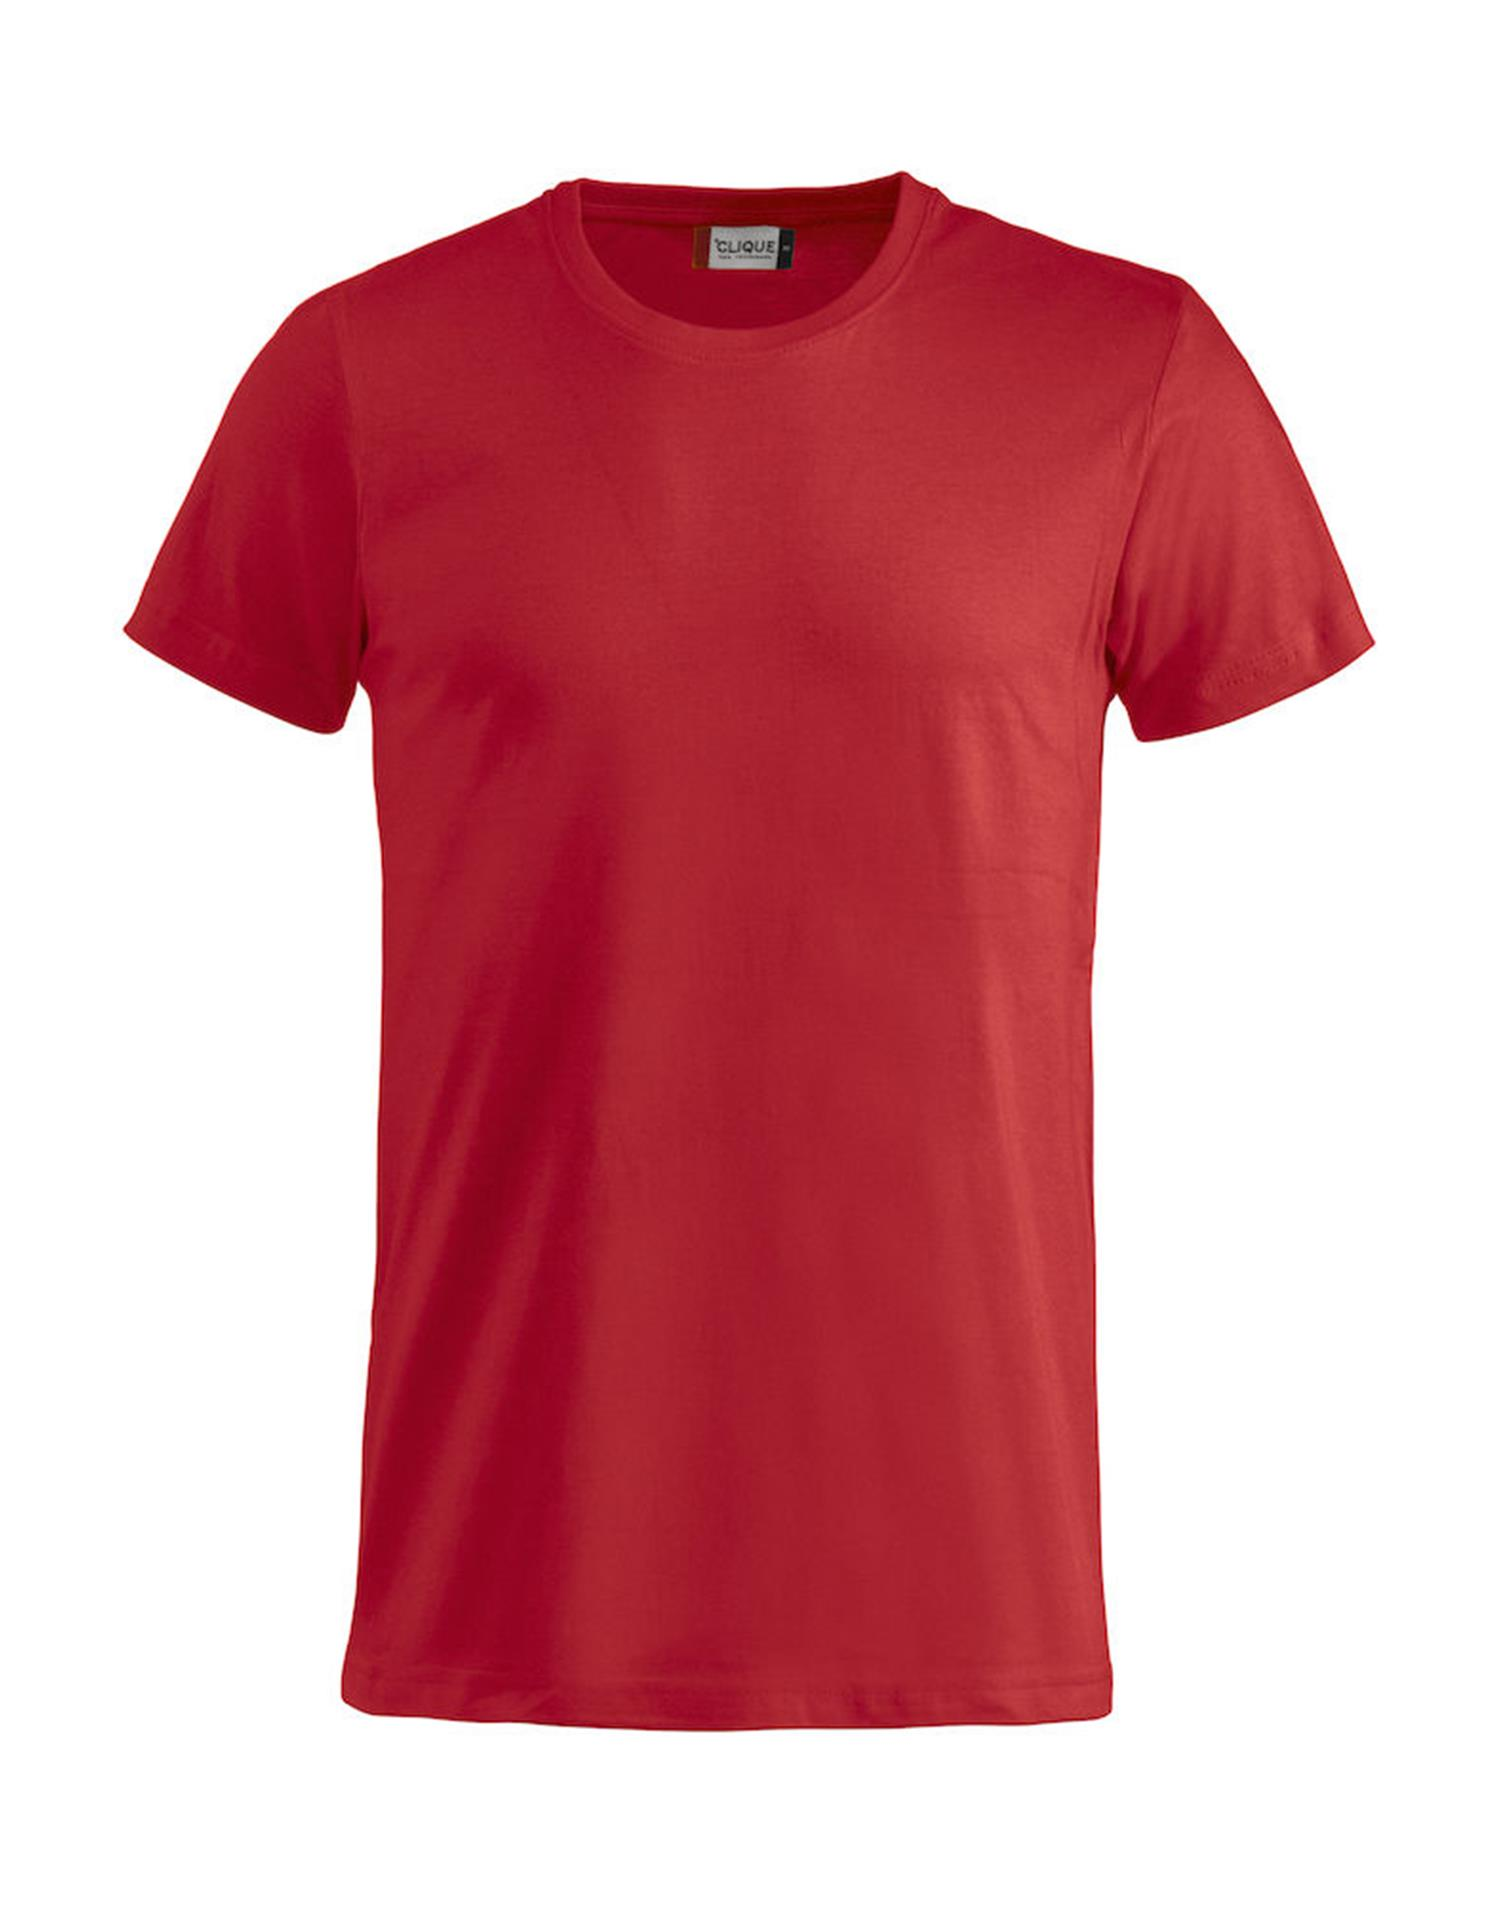 NewWave T-shirt Basic-T Clique (XS - ROSSO)